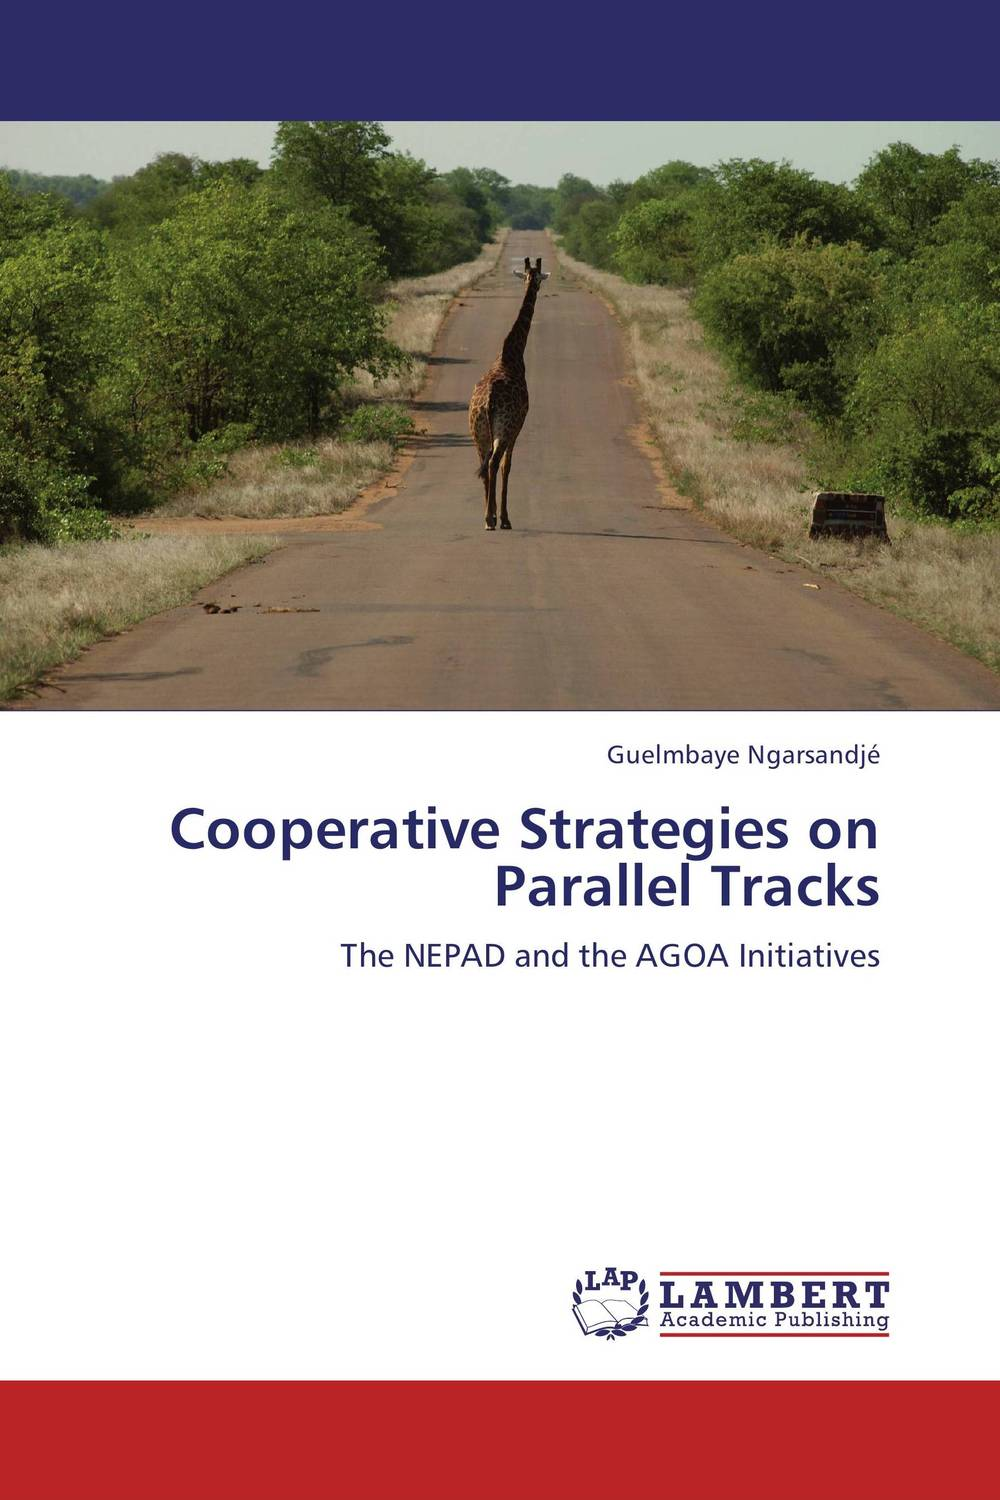 Cooperative Strategies on Parallel Tracks